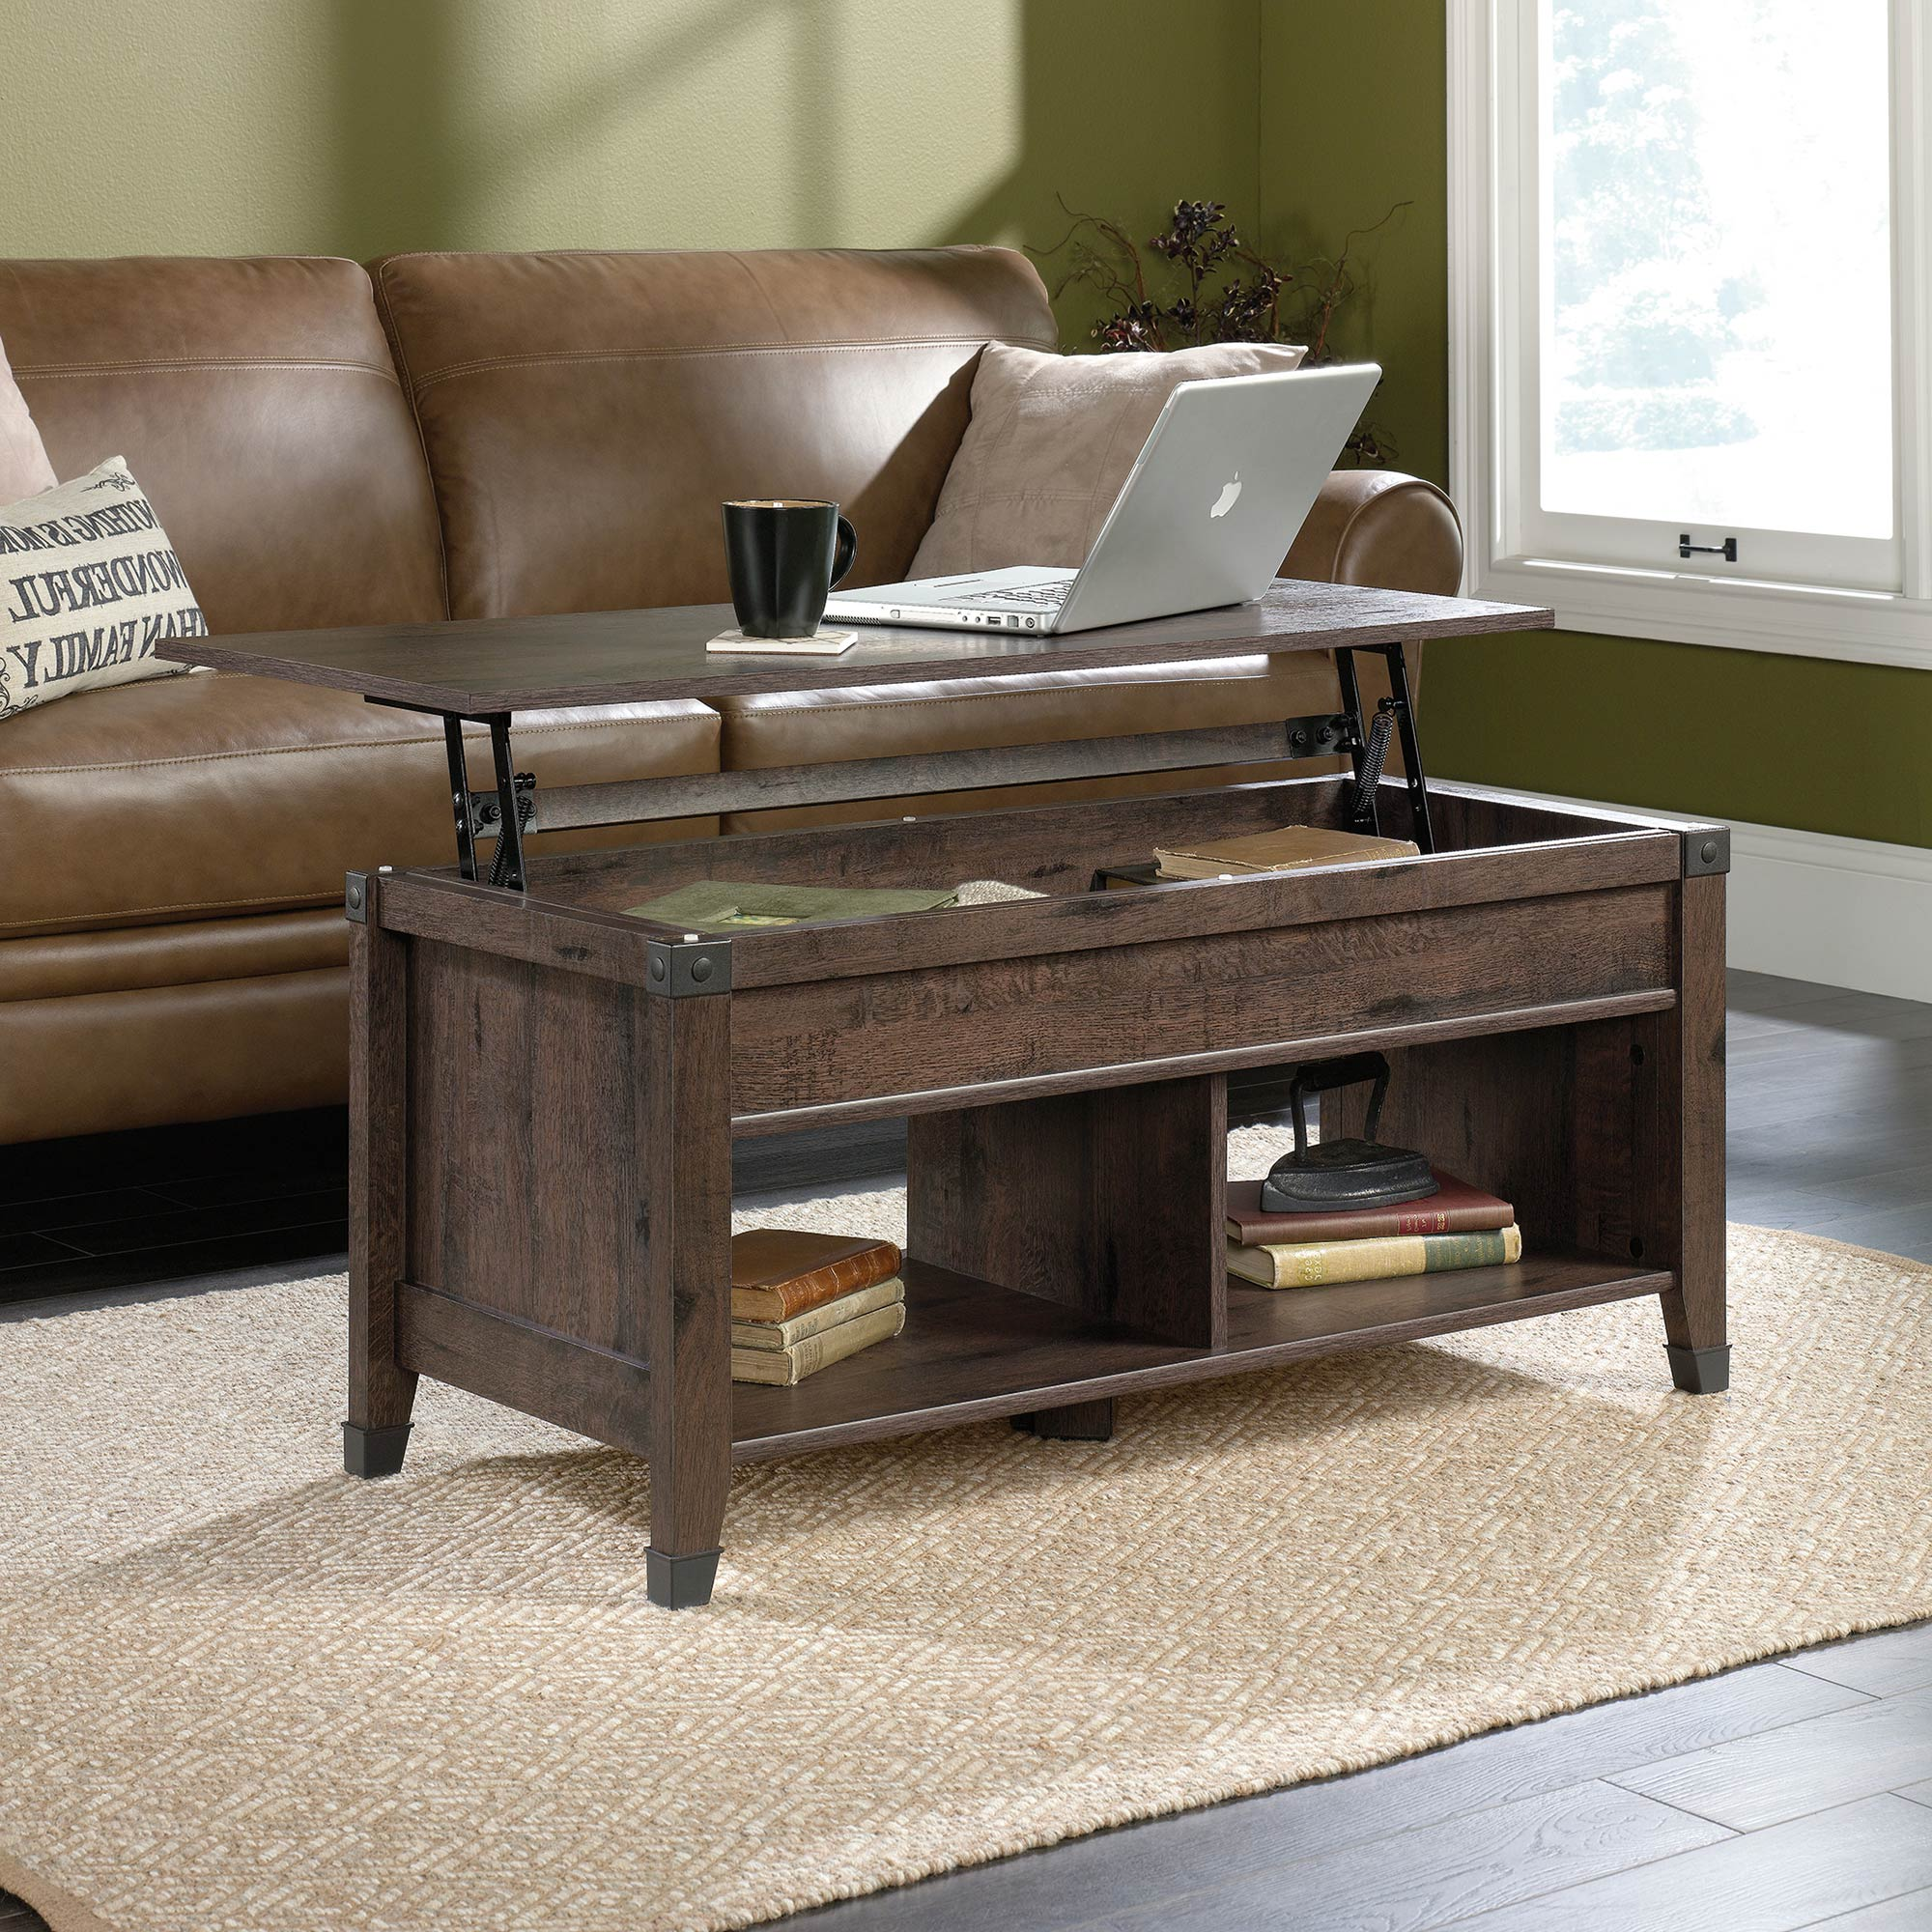 Raise Up Coffee Table Coffee Tables That Lift Up Tray